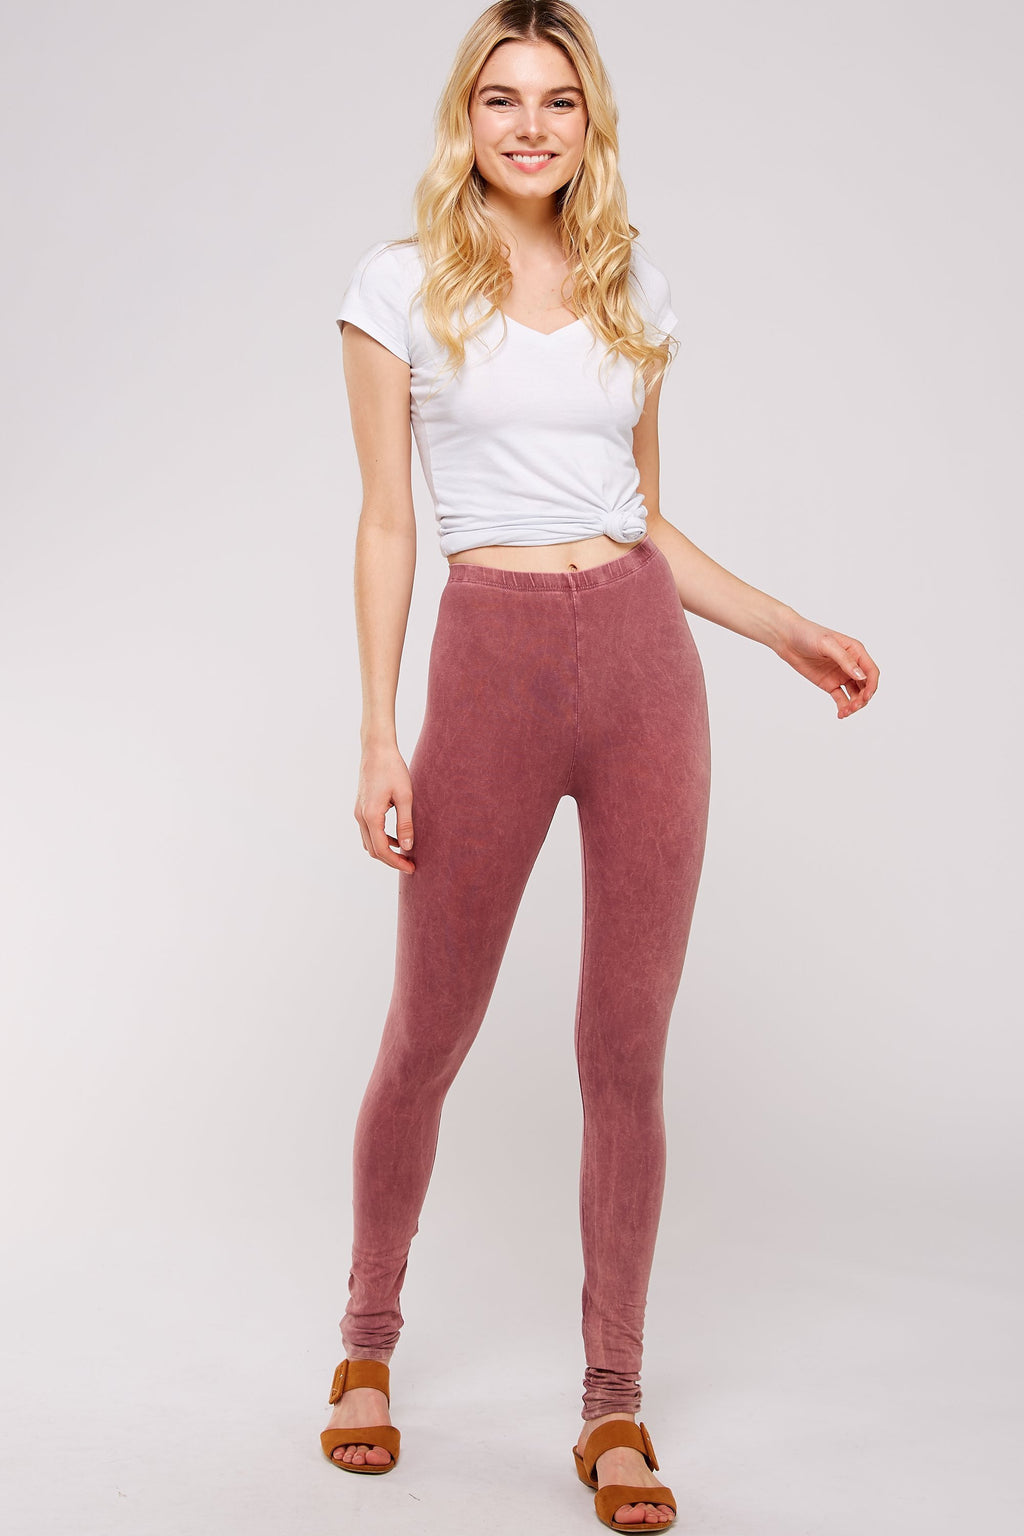 Wholesale Clothing, Online Wholesale Clothing, Women Clothing, Bohemian, Free People, tiedye, specialty wash, wholesale seller, wholesale women clothing shop, gypsy look, USA made, URBAN X APPAREL-LEGGINGS-UPC3099M, fashiontrend2019